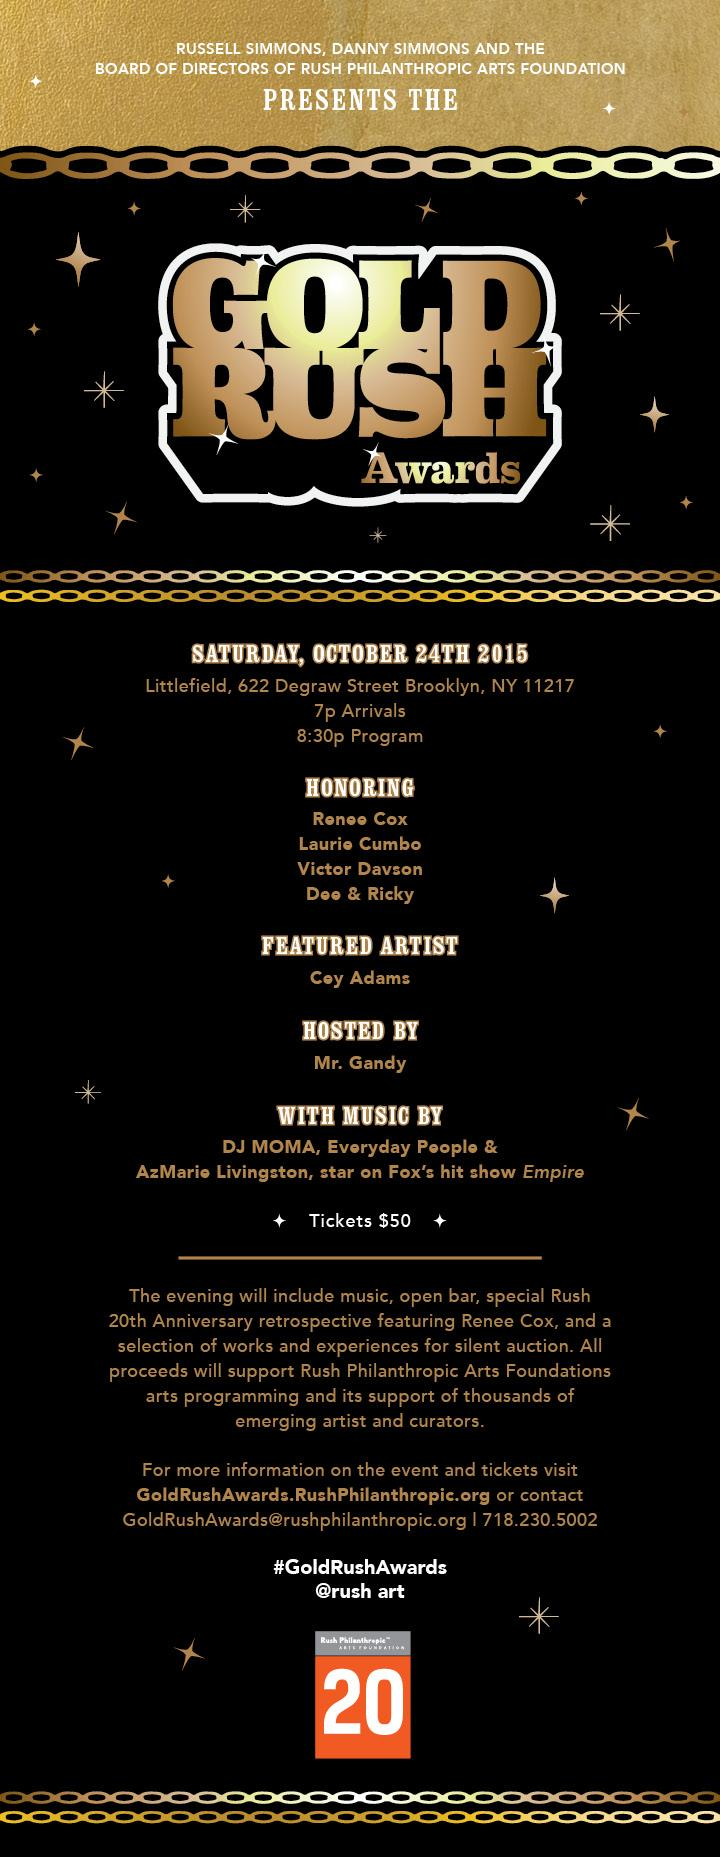 RT @rush_art: #SaveTheDate! So excited for #GoldRushAwards Oct. 24th! @littlefieldnyc, http://t.co/uGVGv30wJ5, Get your tix now! http://t.c…